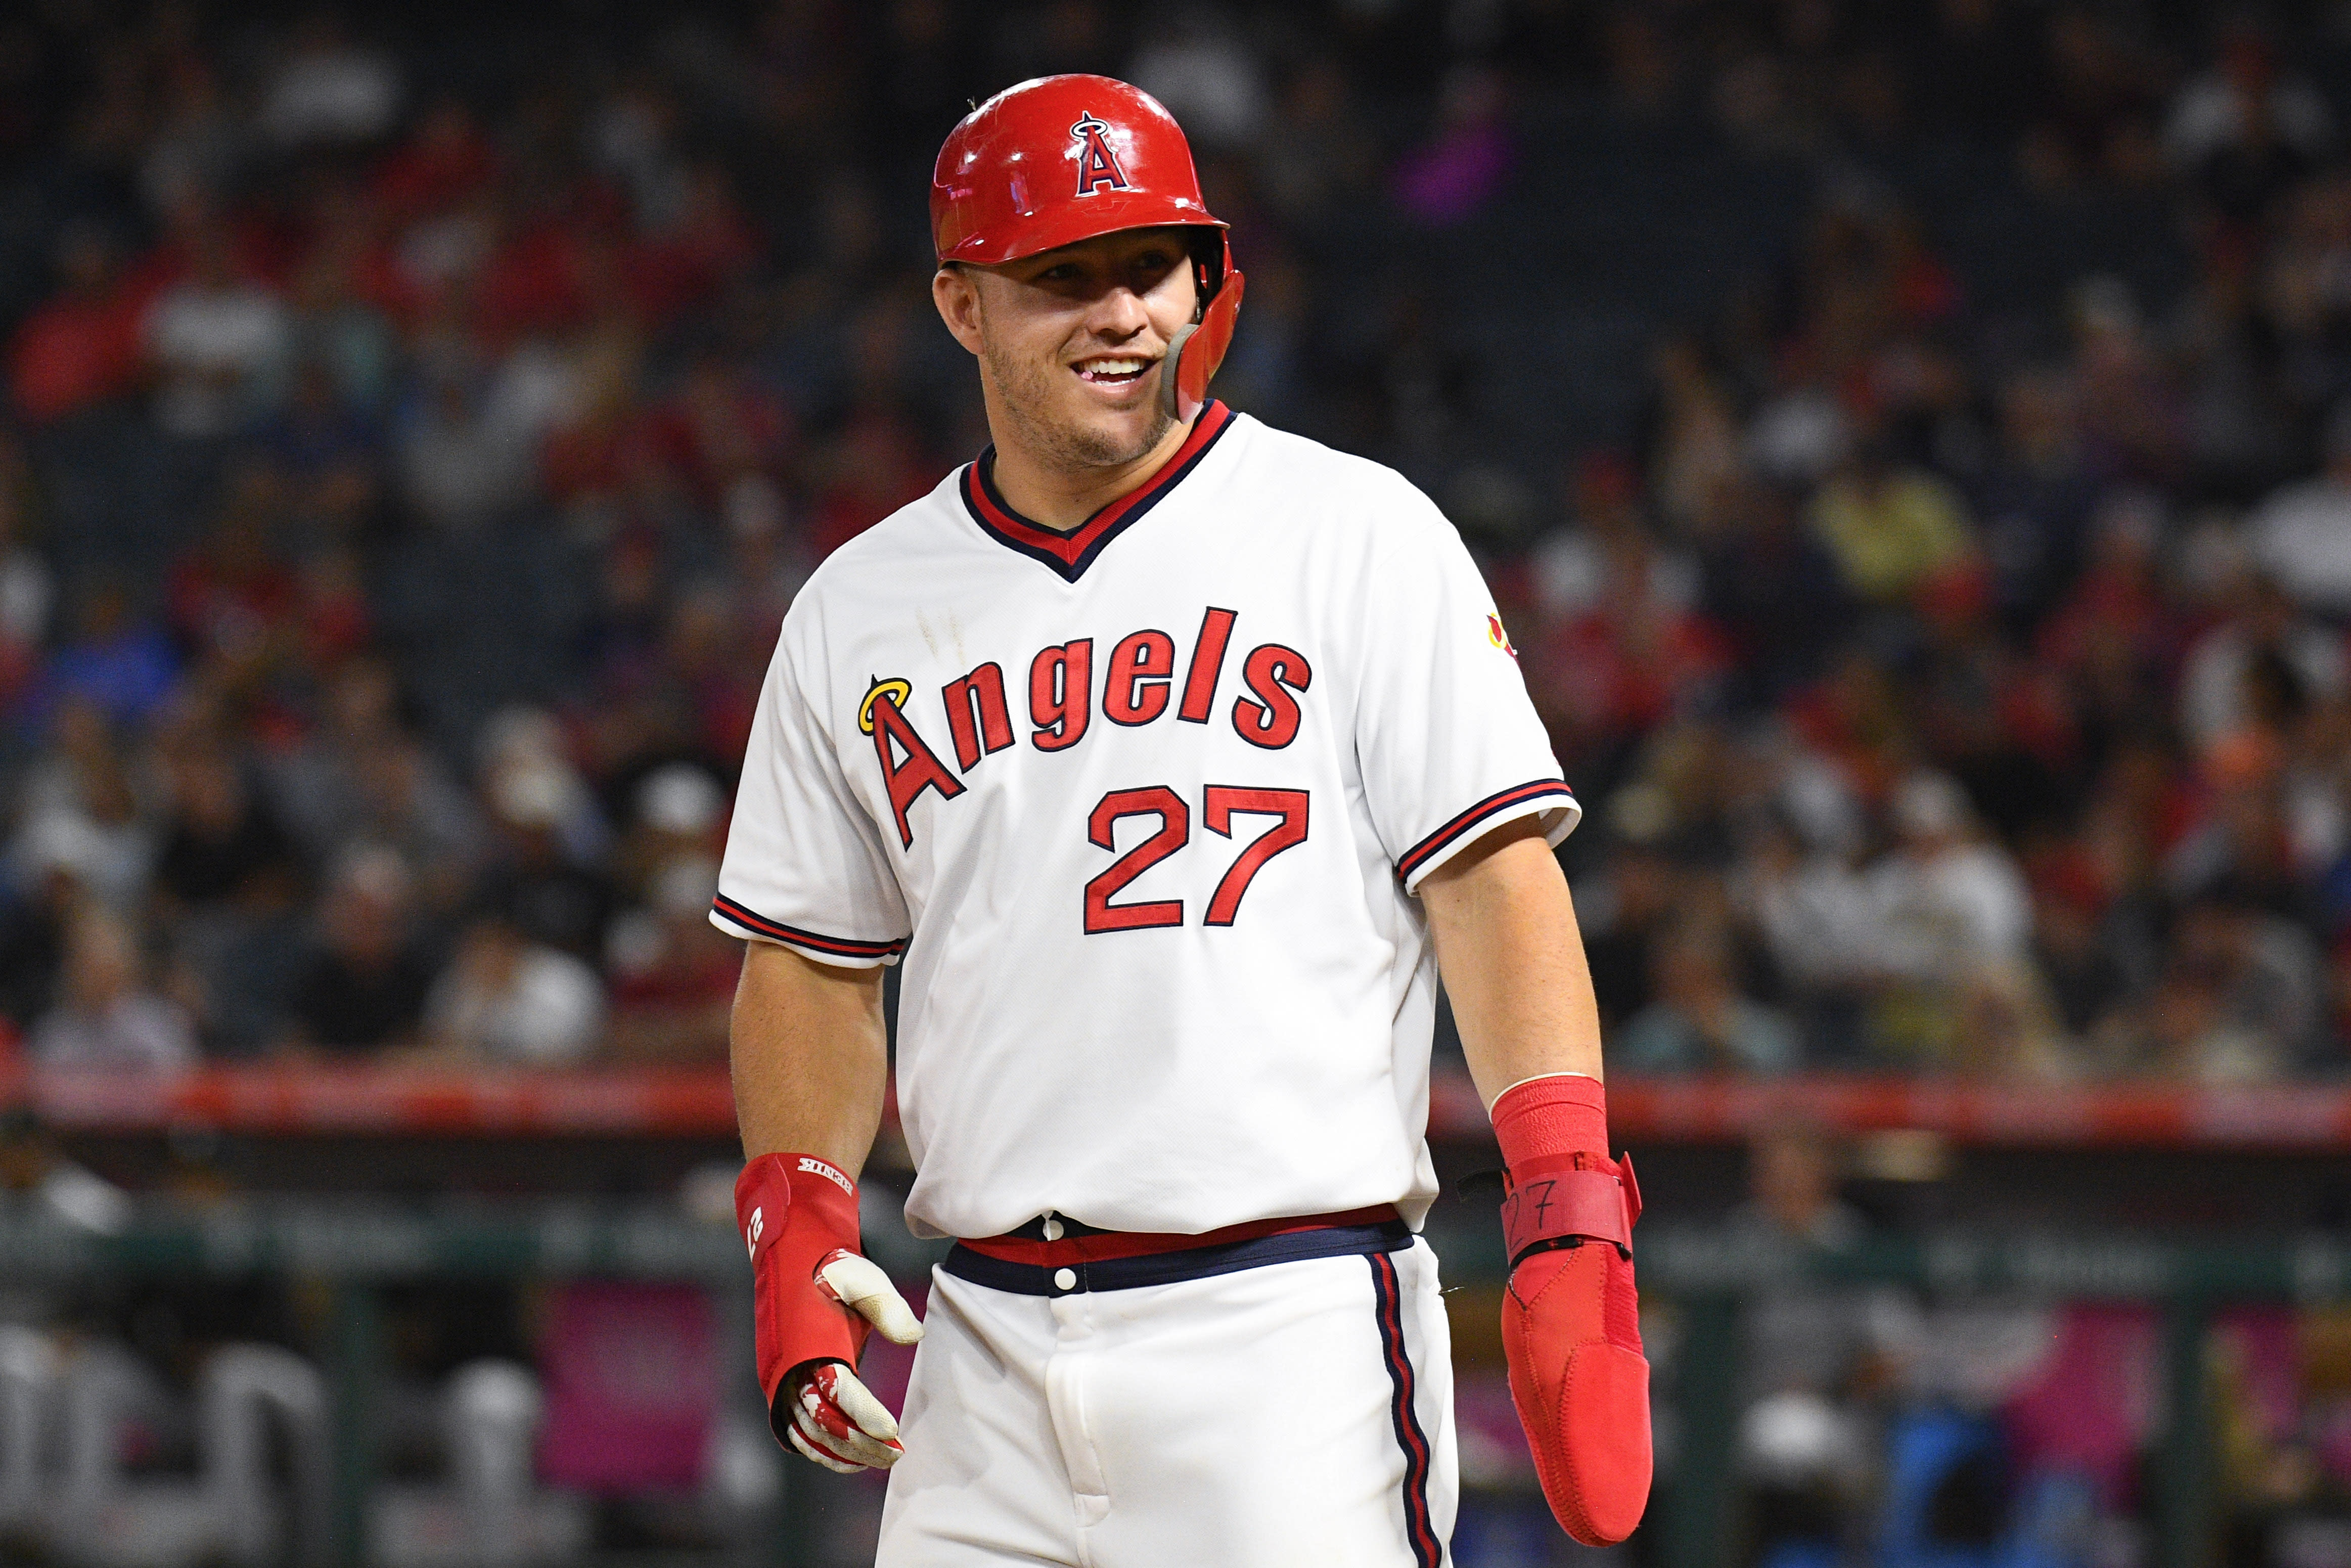 Mike Trout wins AL MVP for third time in storied MLB career - Yahoo Sports